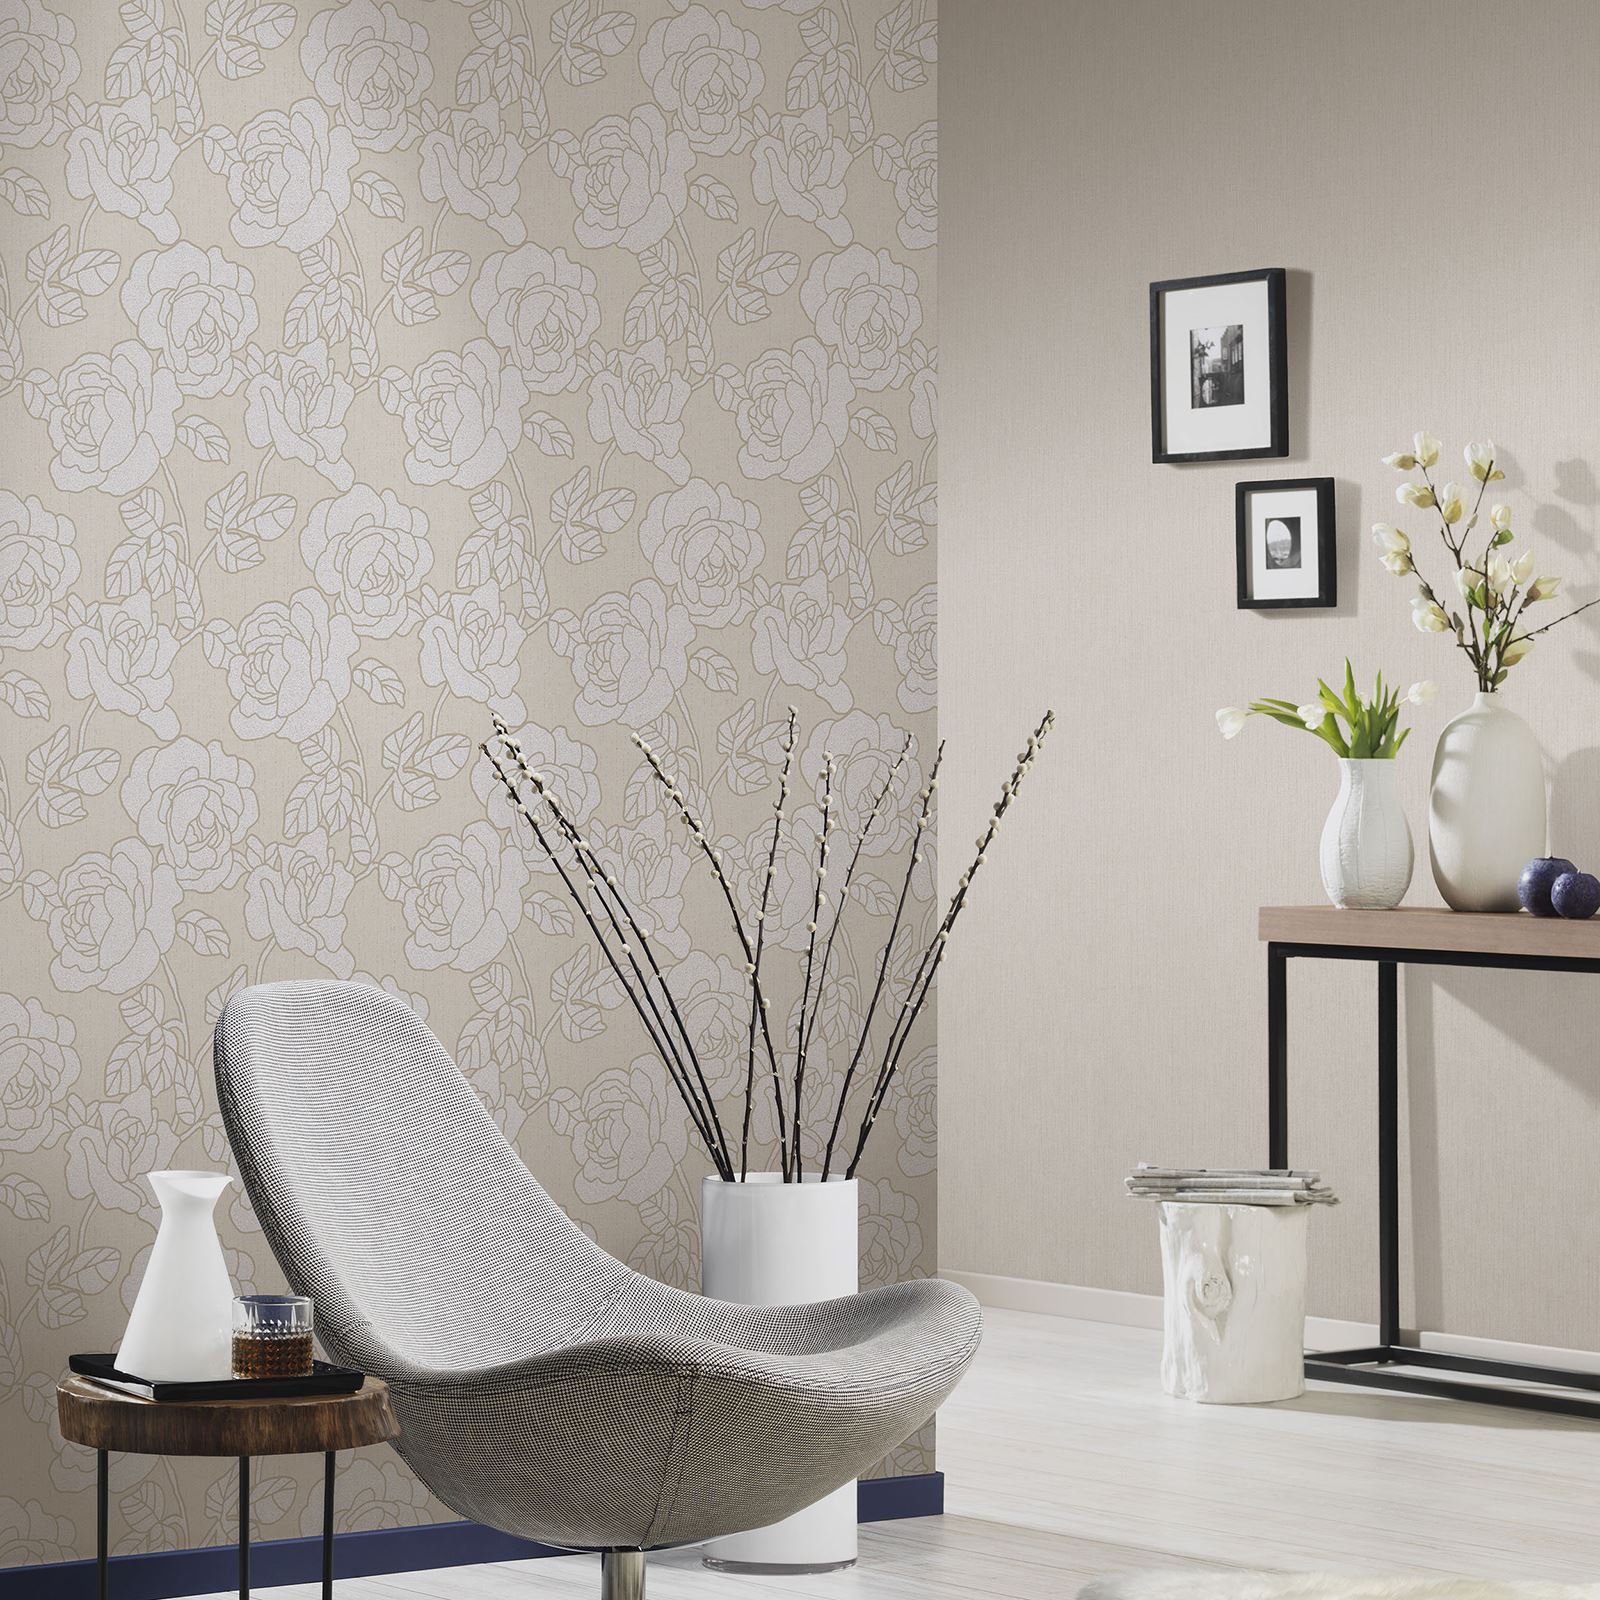 P S OPAL FLORAL WALLPAPER WITH GLITTER HIGHLIGHTS BLACK GREY CREAM FEATURE WALL